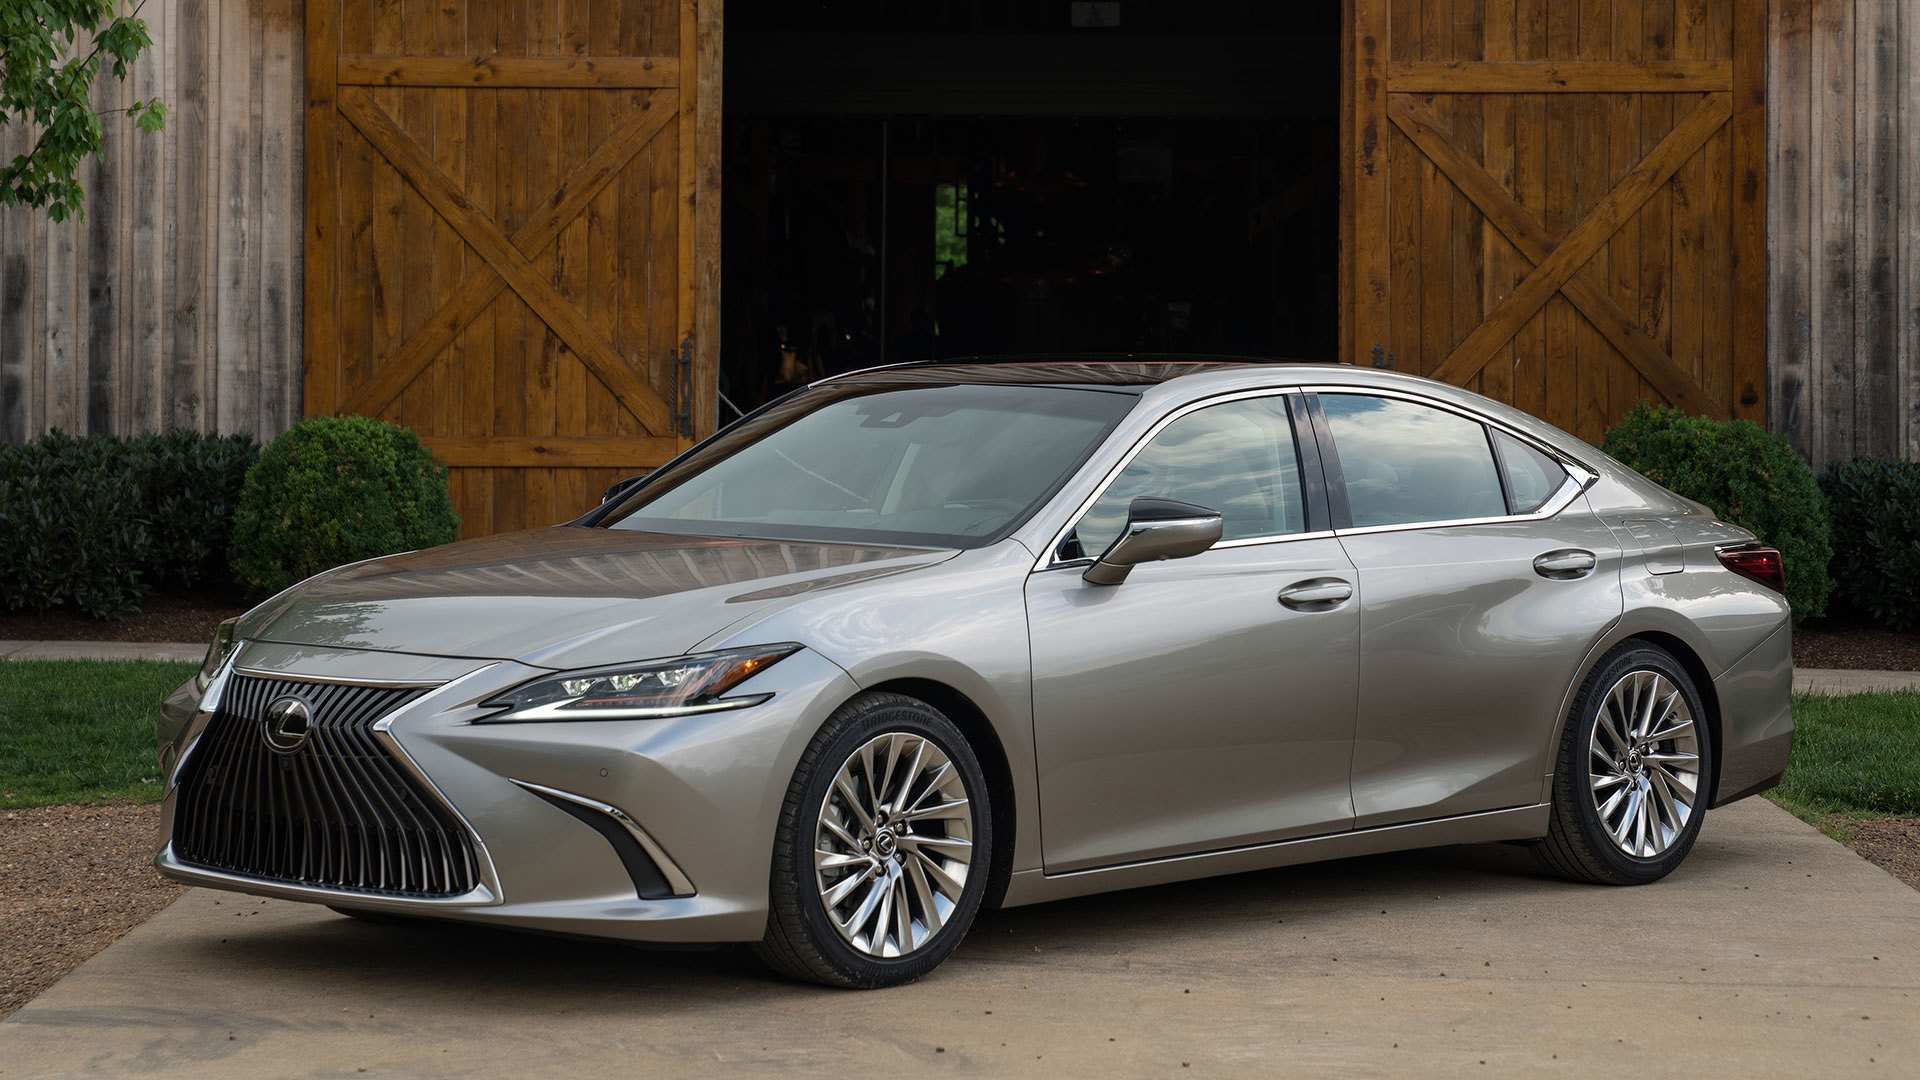 86 Gallery of 2019 Lexus Es 350 Performance and New Engine for 2019 Lexus Es 350